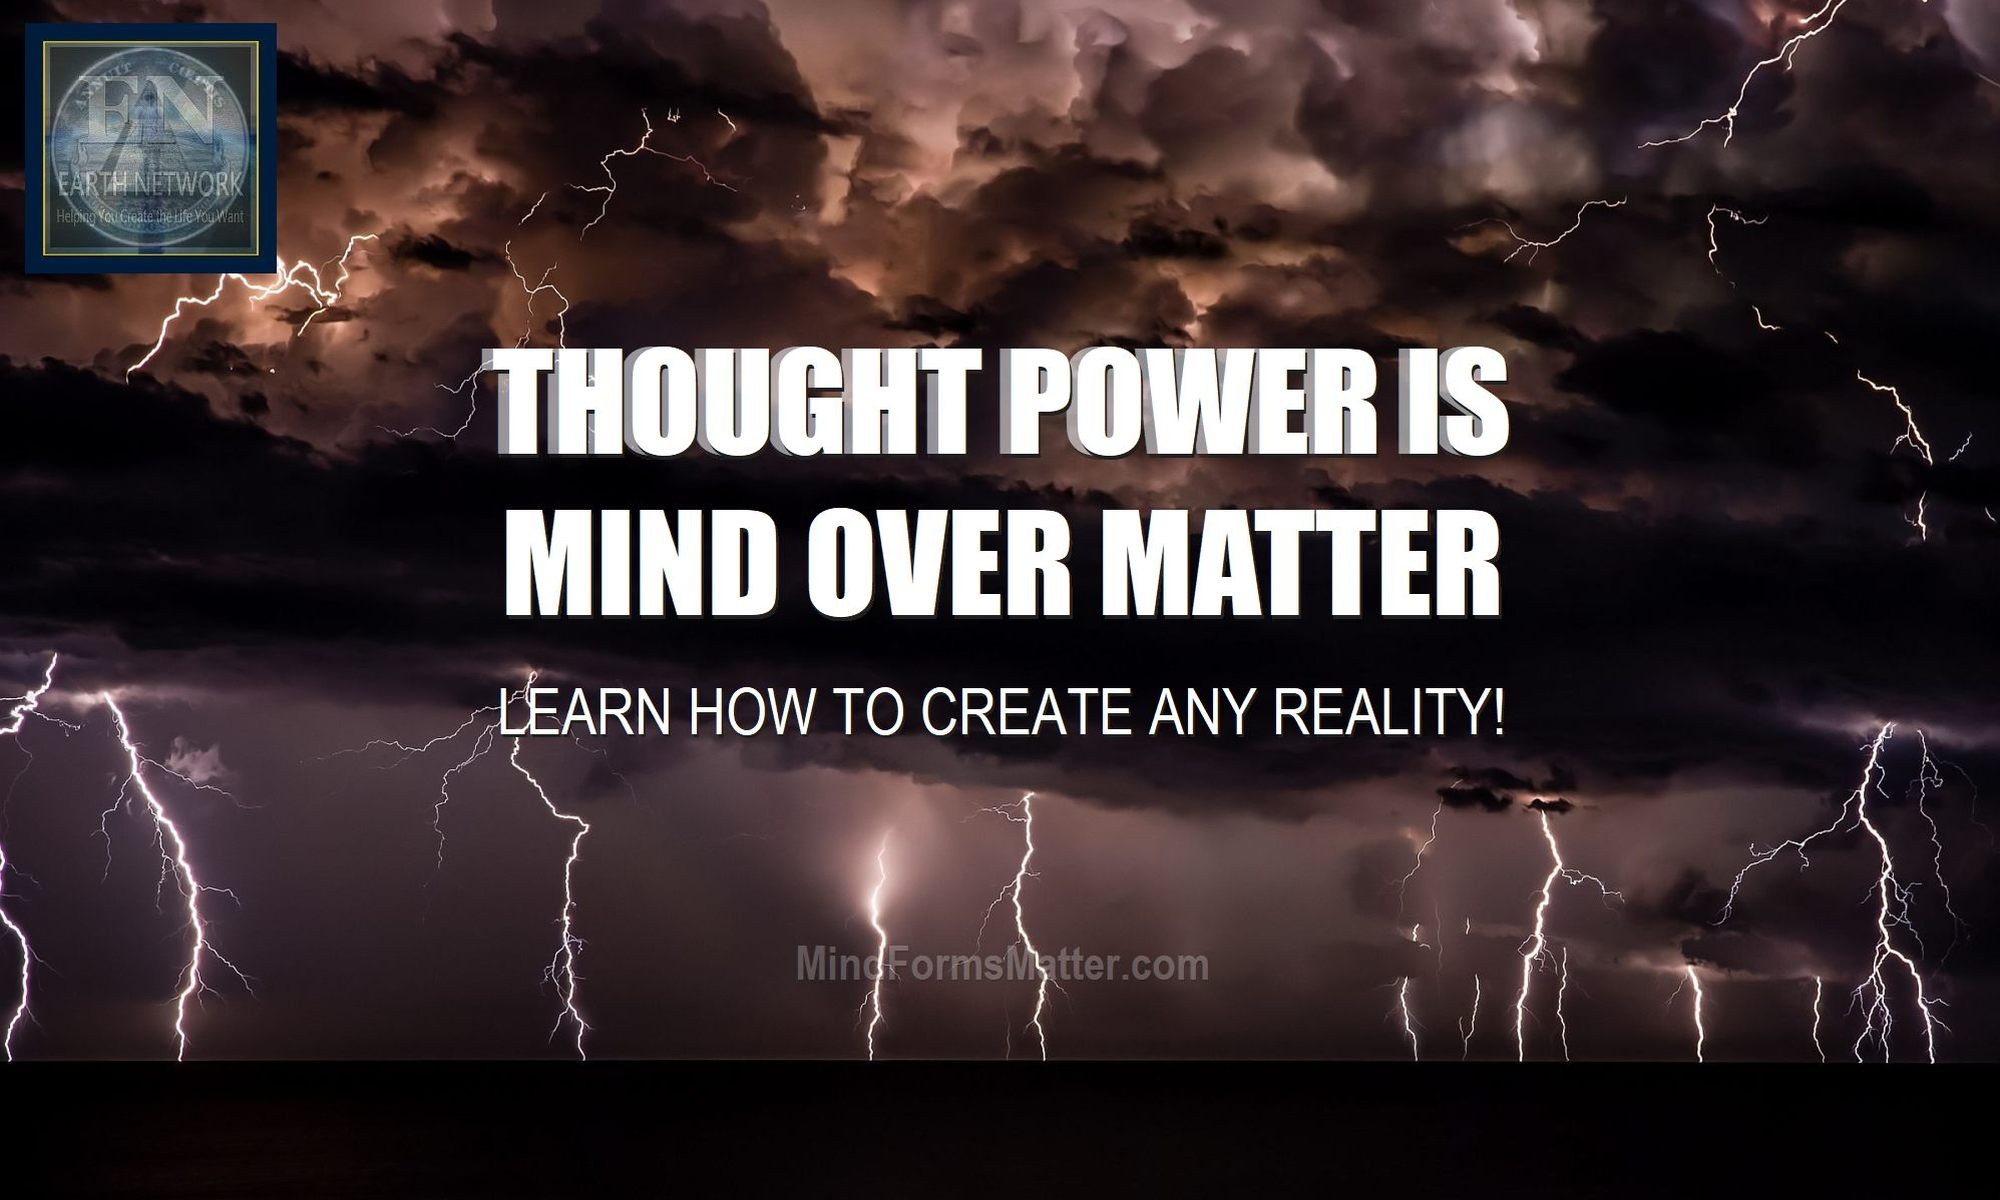 Lightening-depicts-how-Thought-power-is-mind-over-matter-how-to-create-any-reality-life-you-want